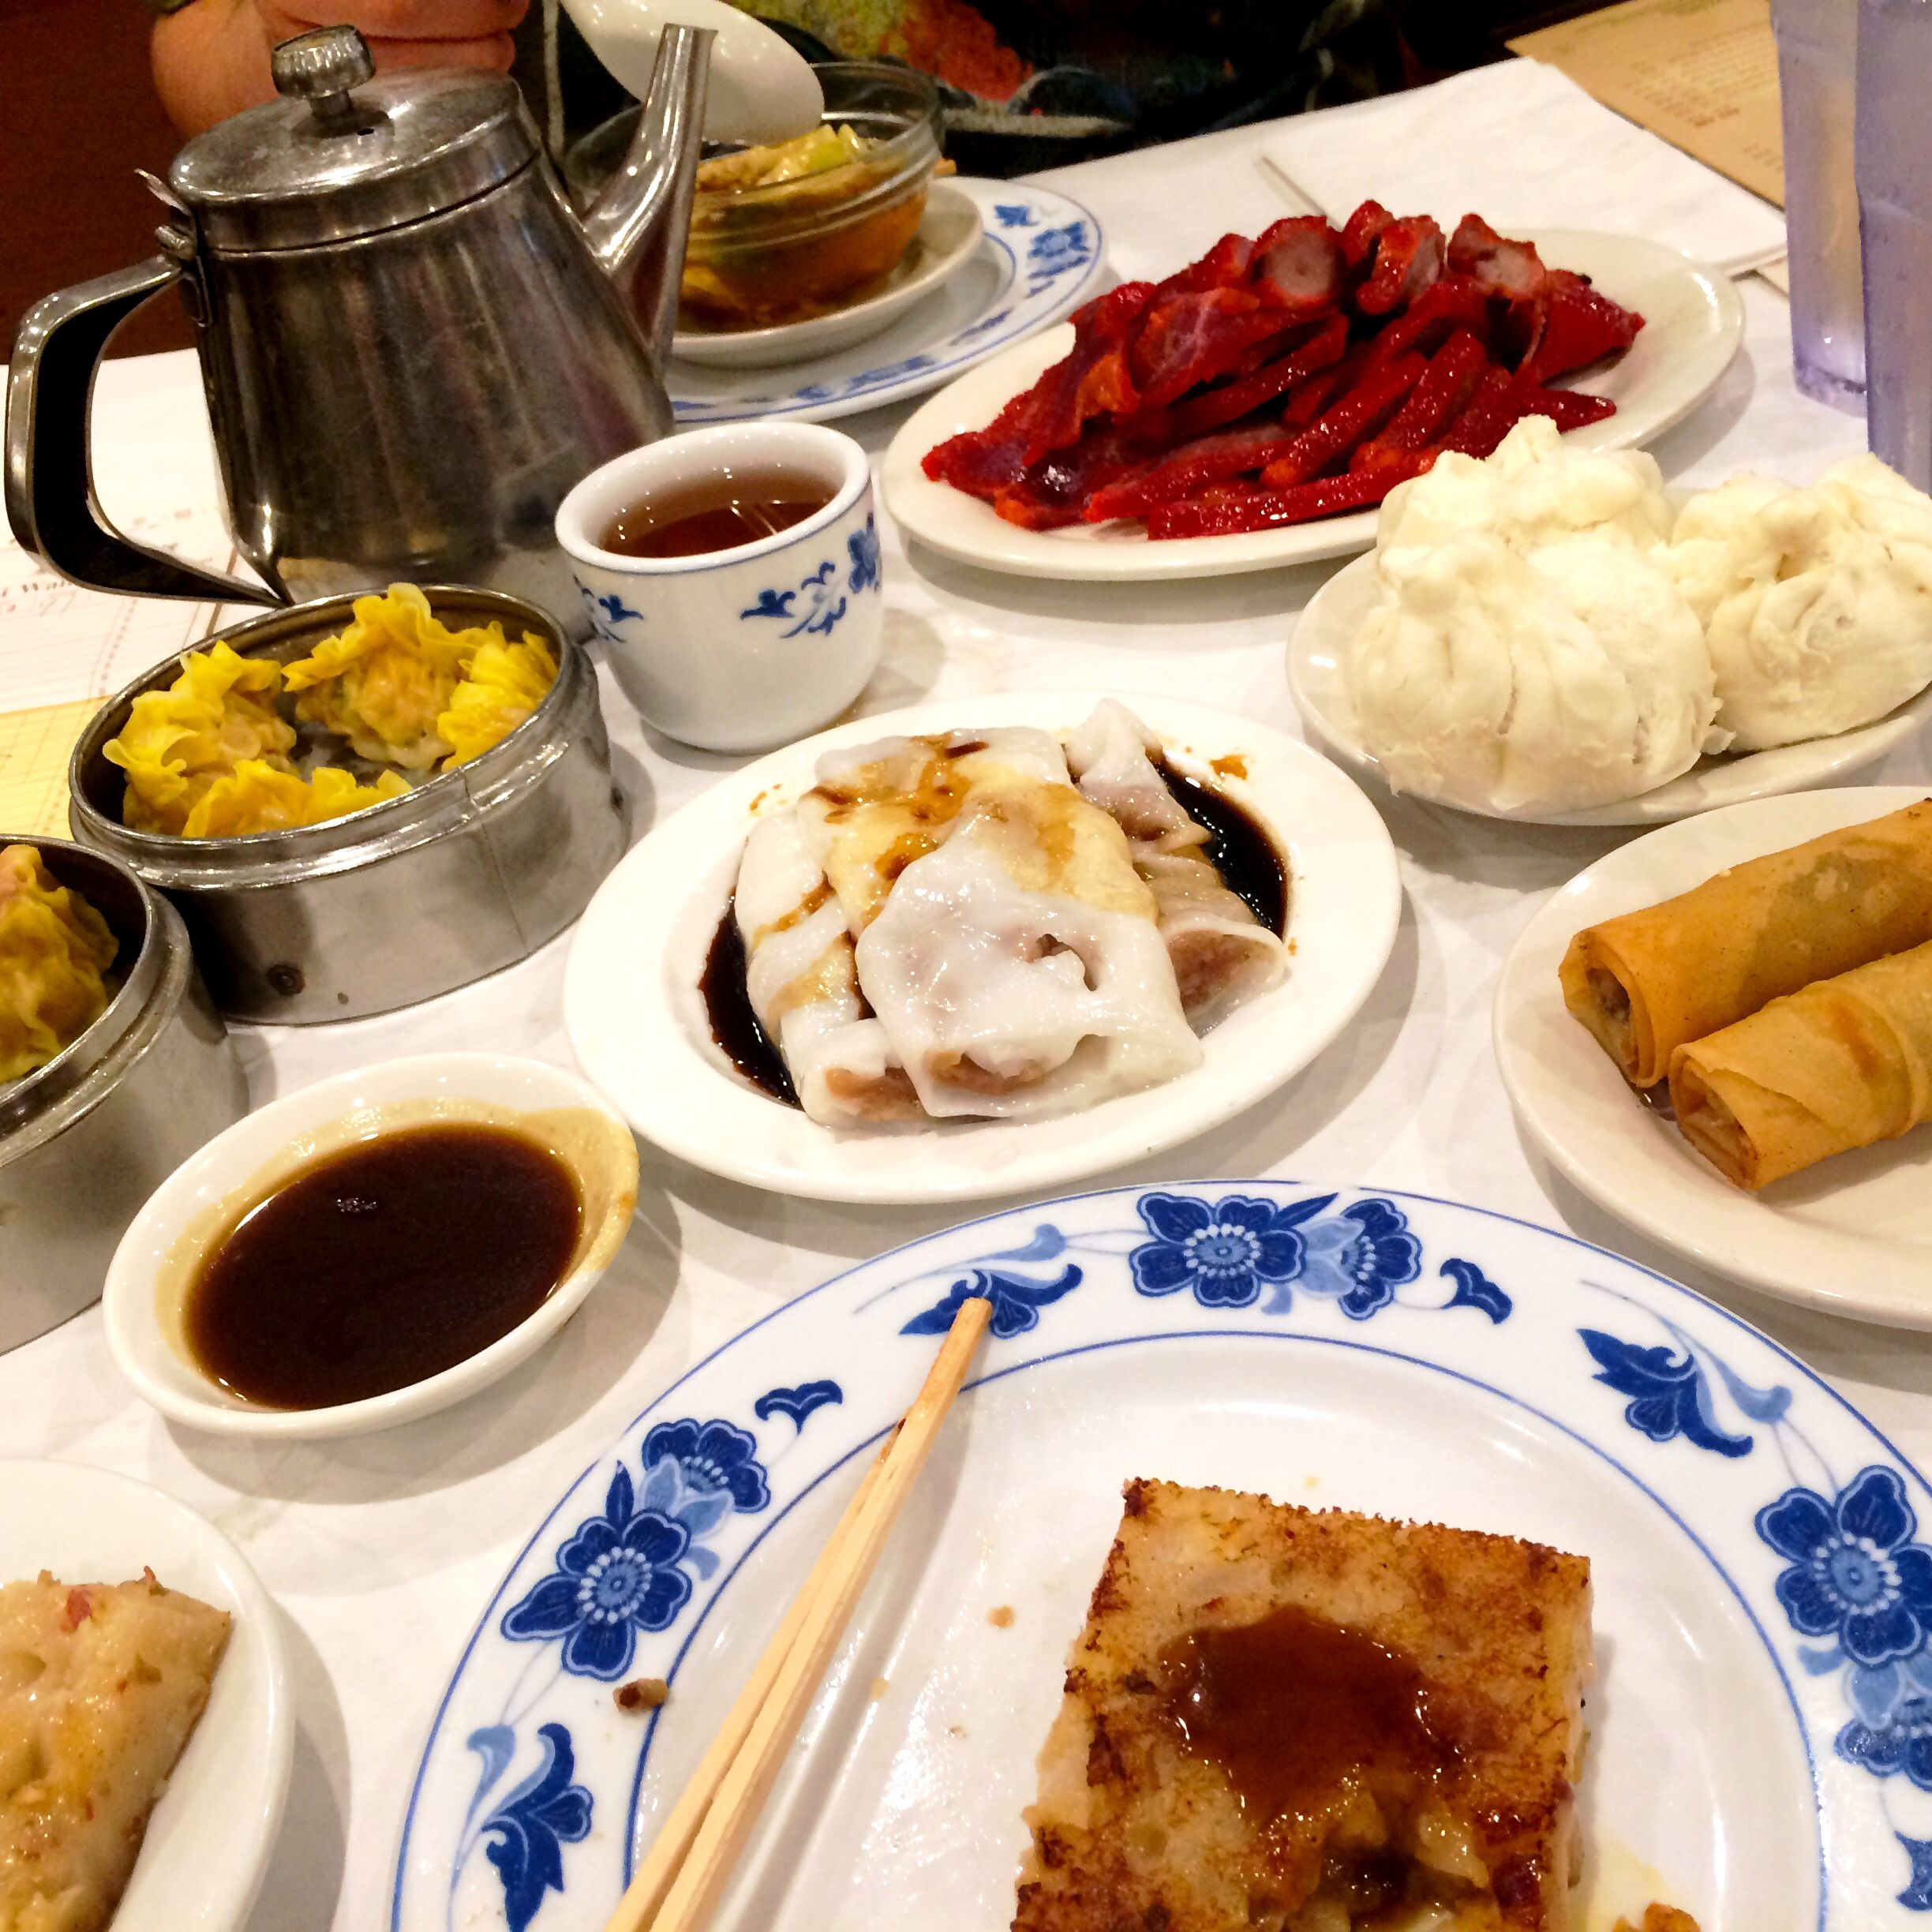 Li Wah - One Of The Best Brunches In Cleveland